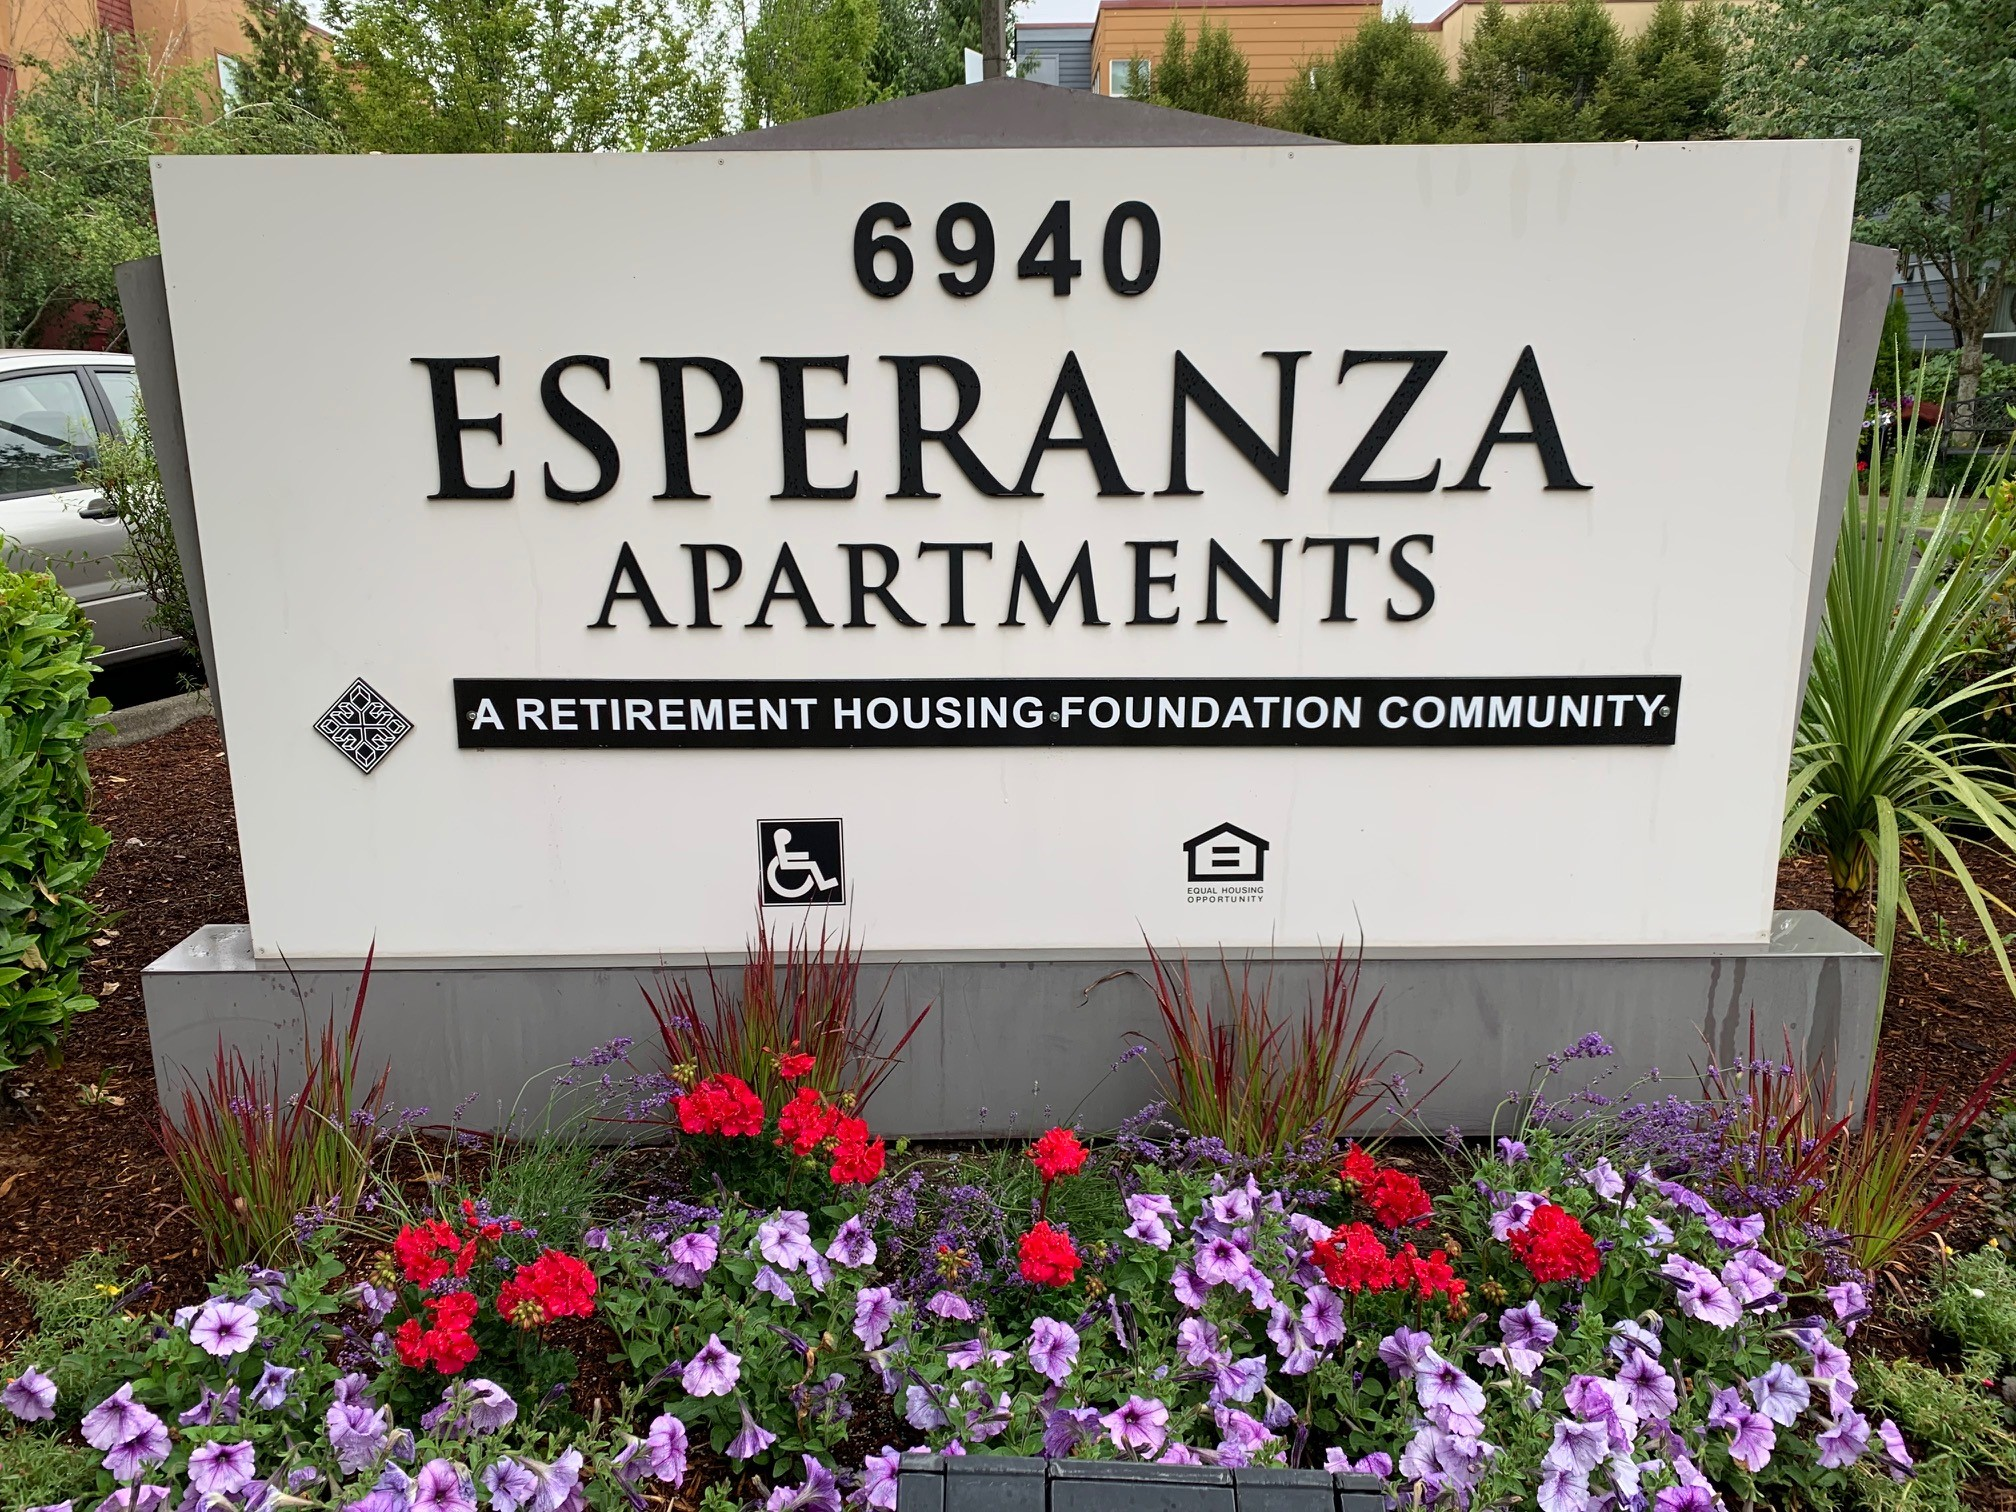 Image of Esperanza Apartments in Seattle, Washington